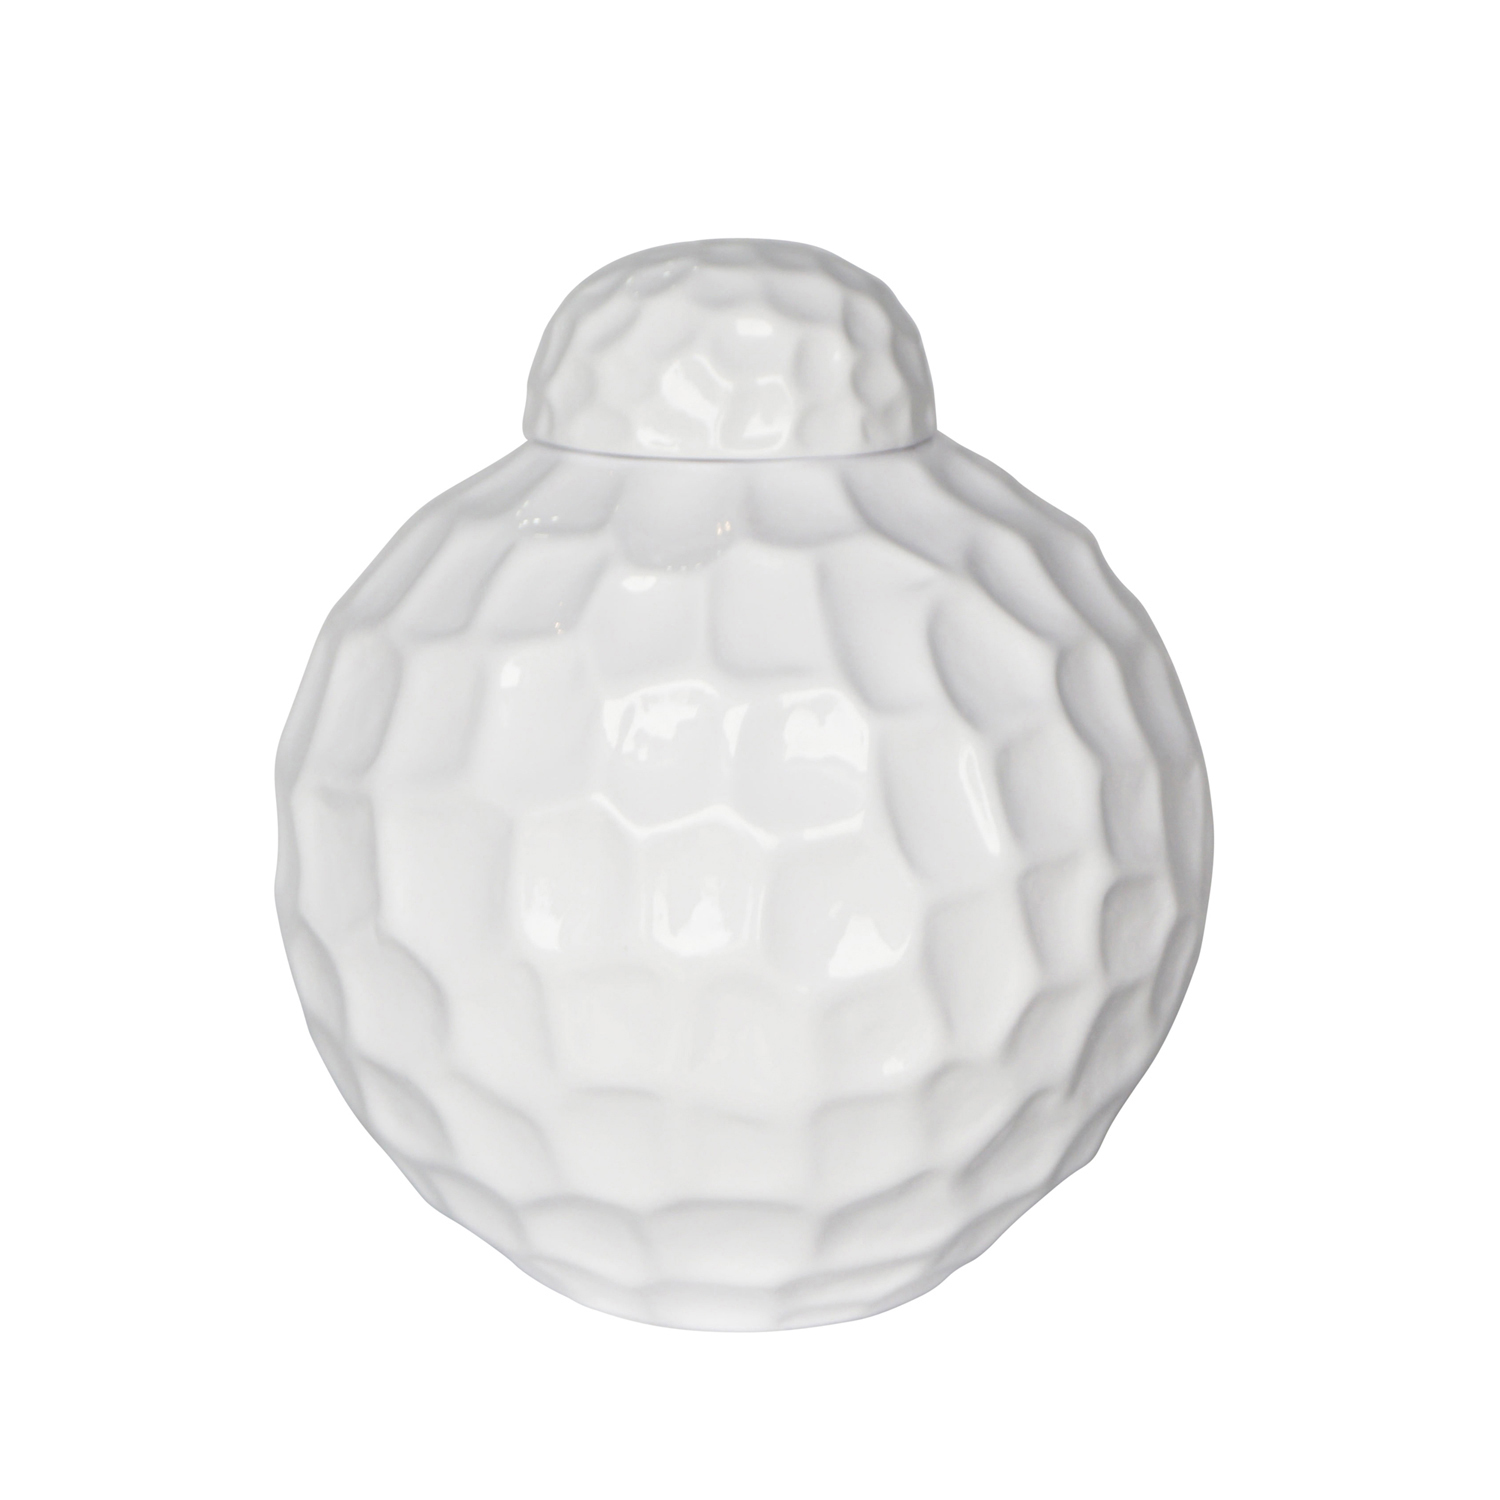 variation thumbnail of Rotund Pitted Ceramic Jar